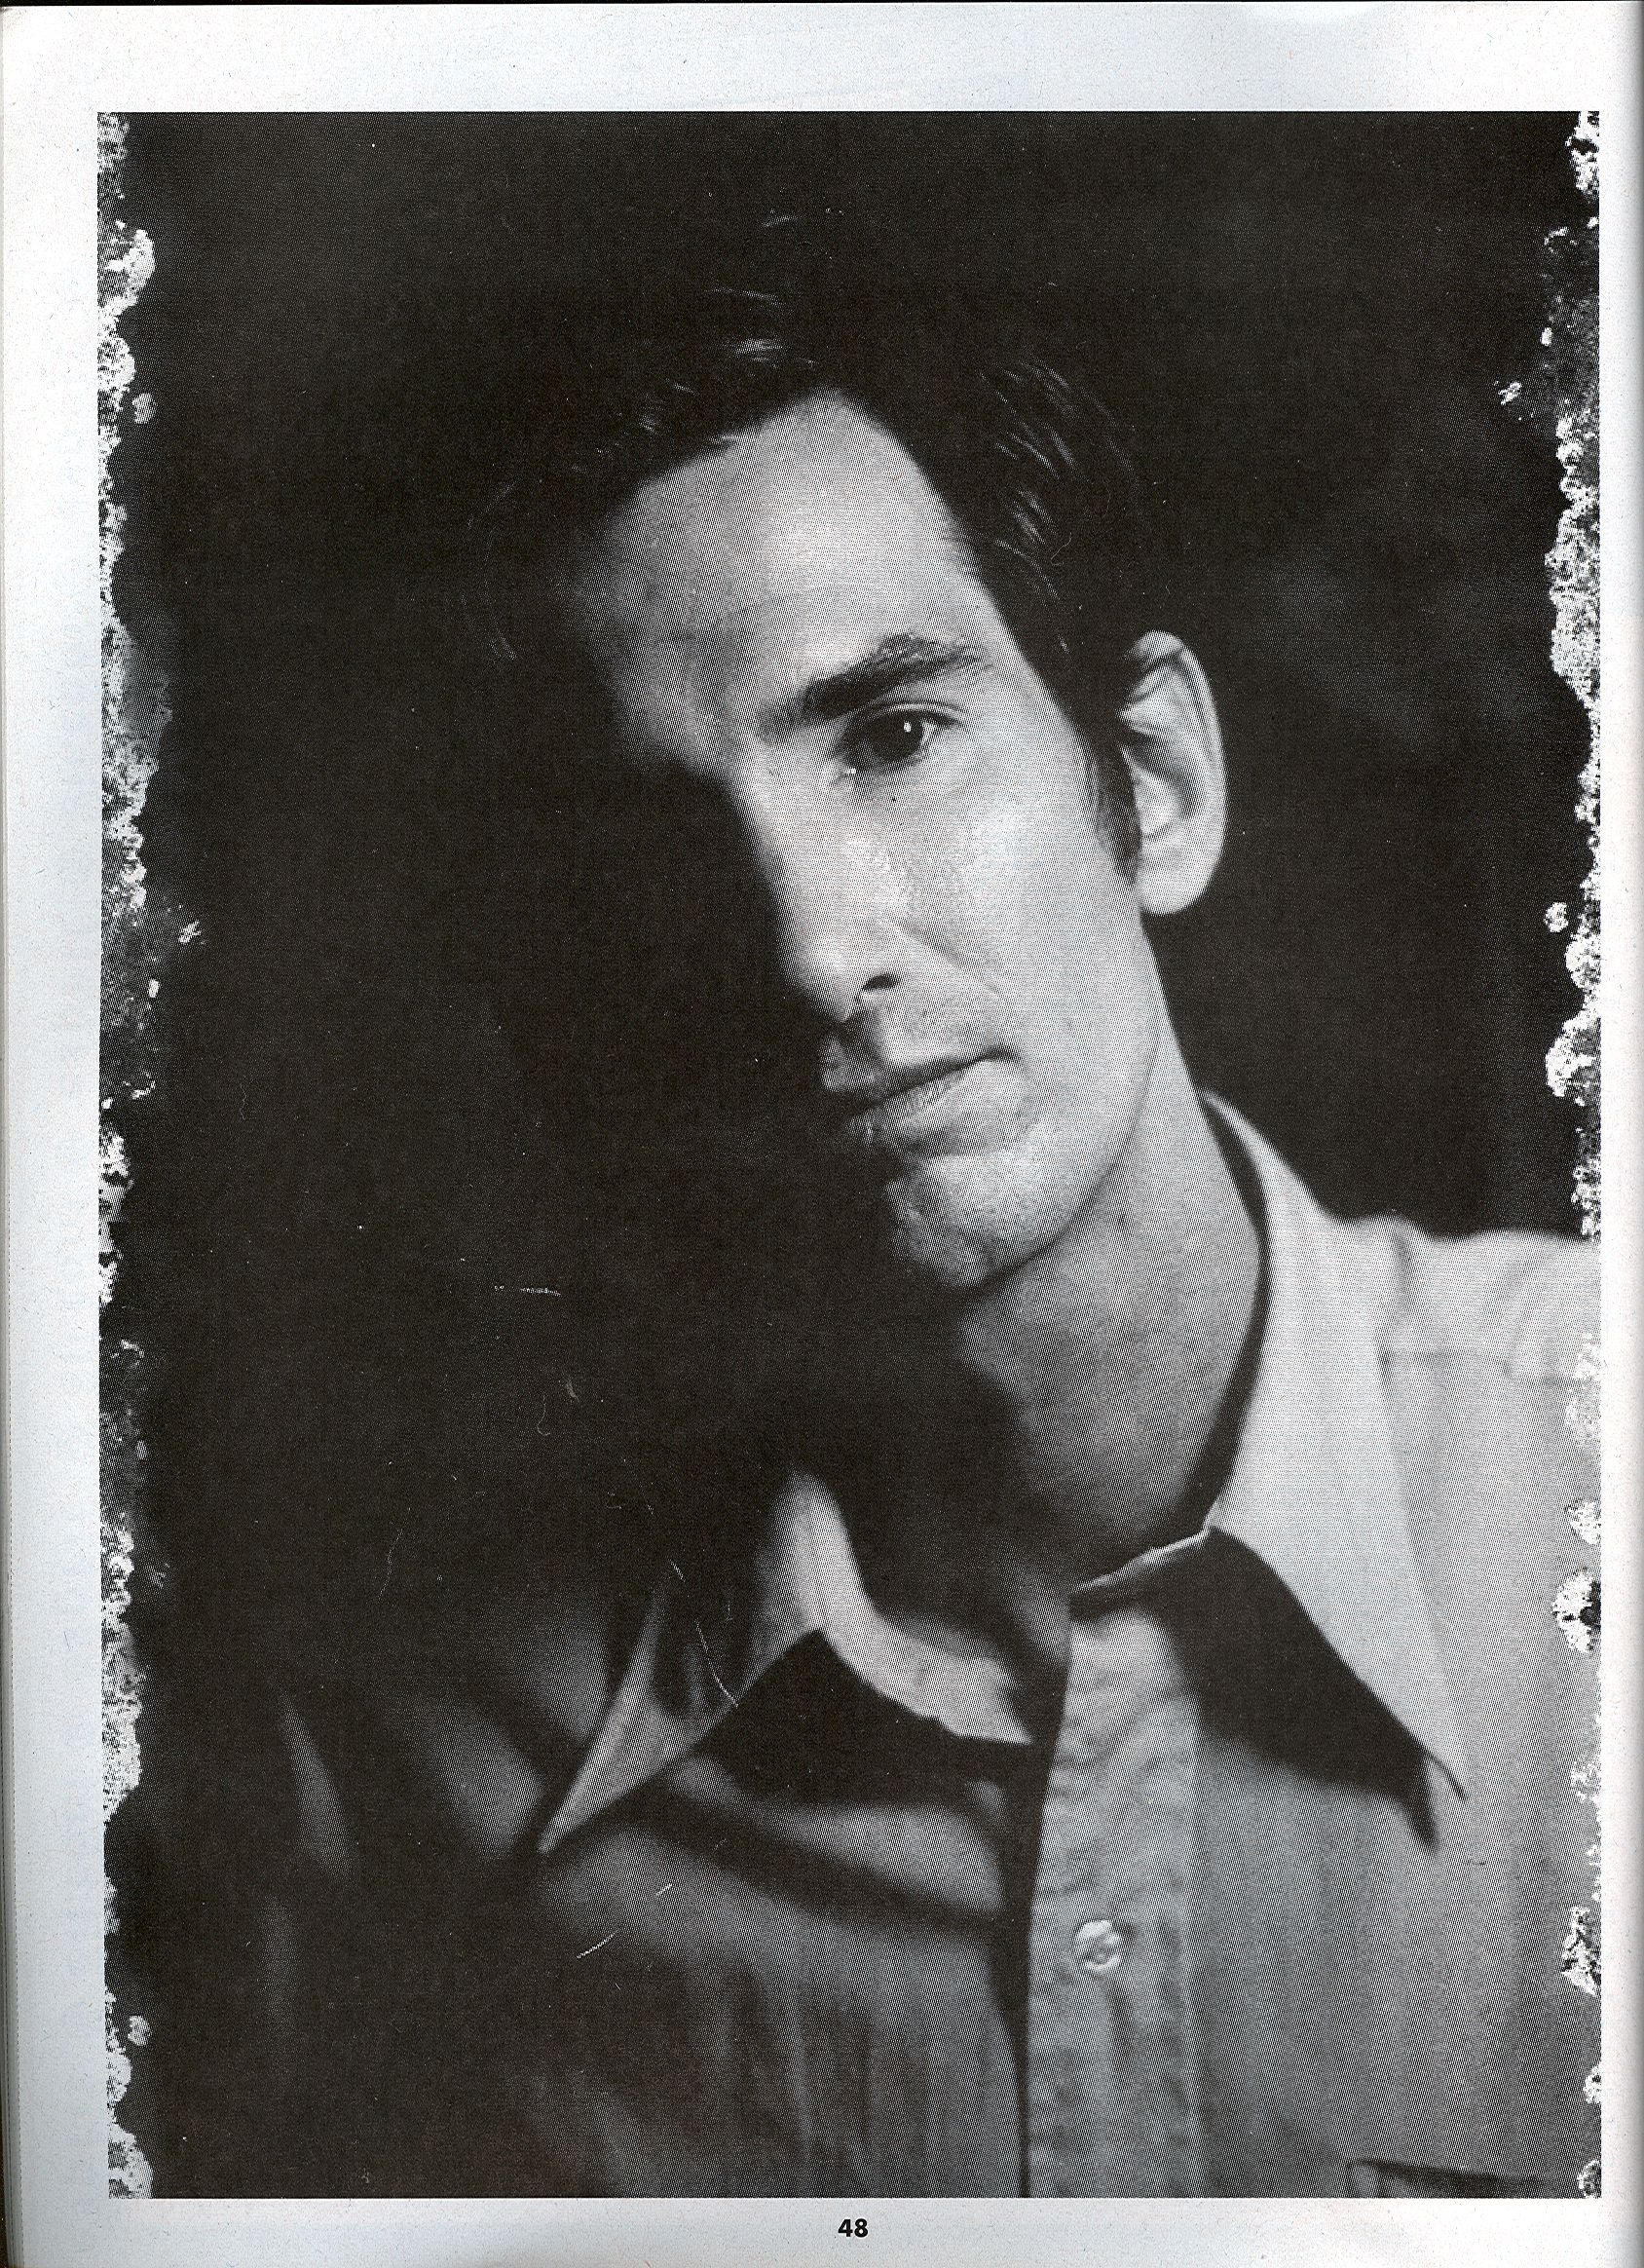 Twenty Years With Townes Van Zandt by Harold F Eggers